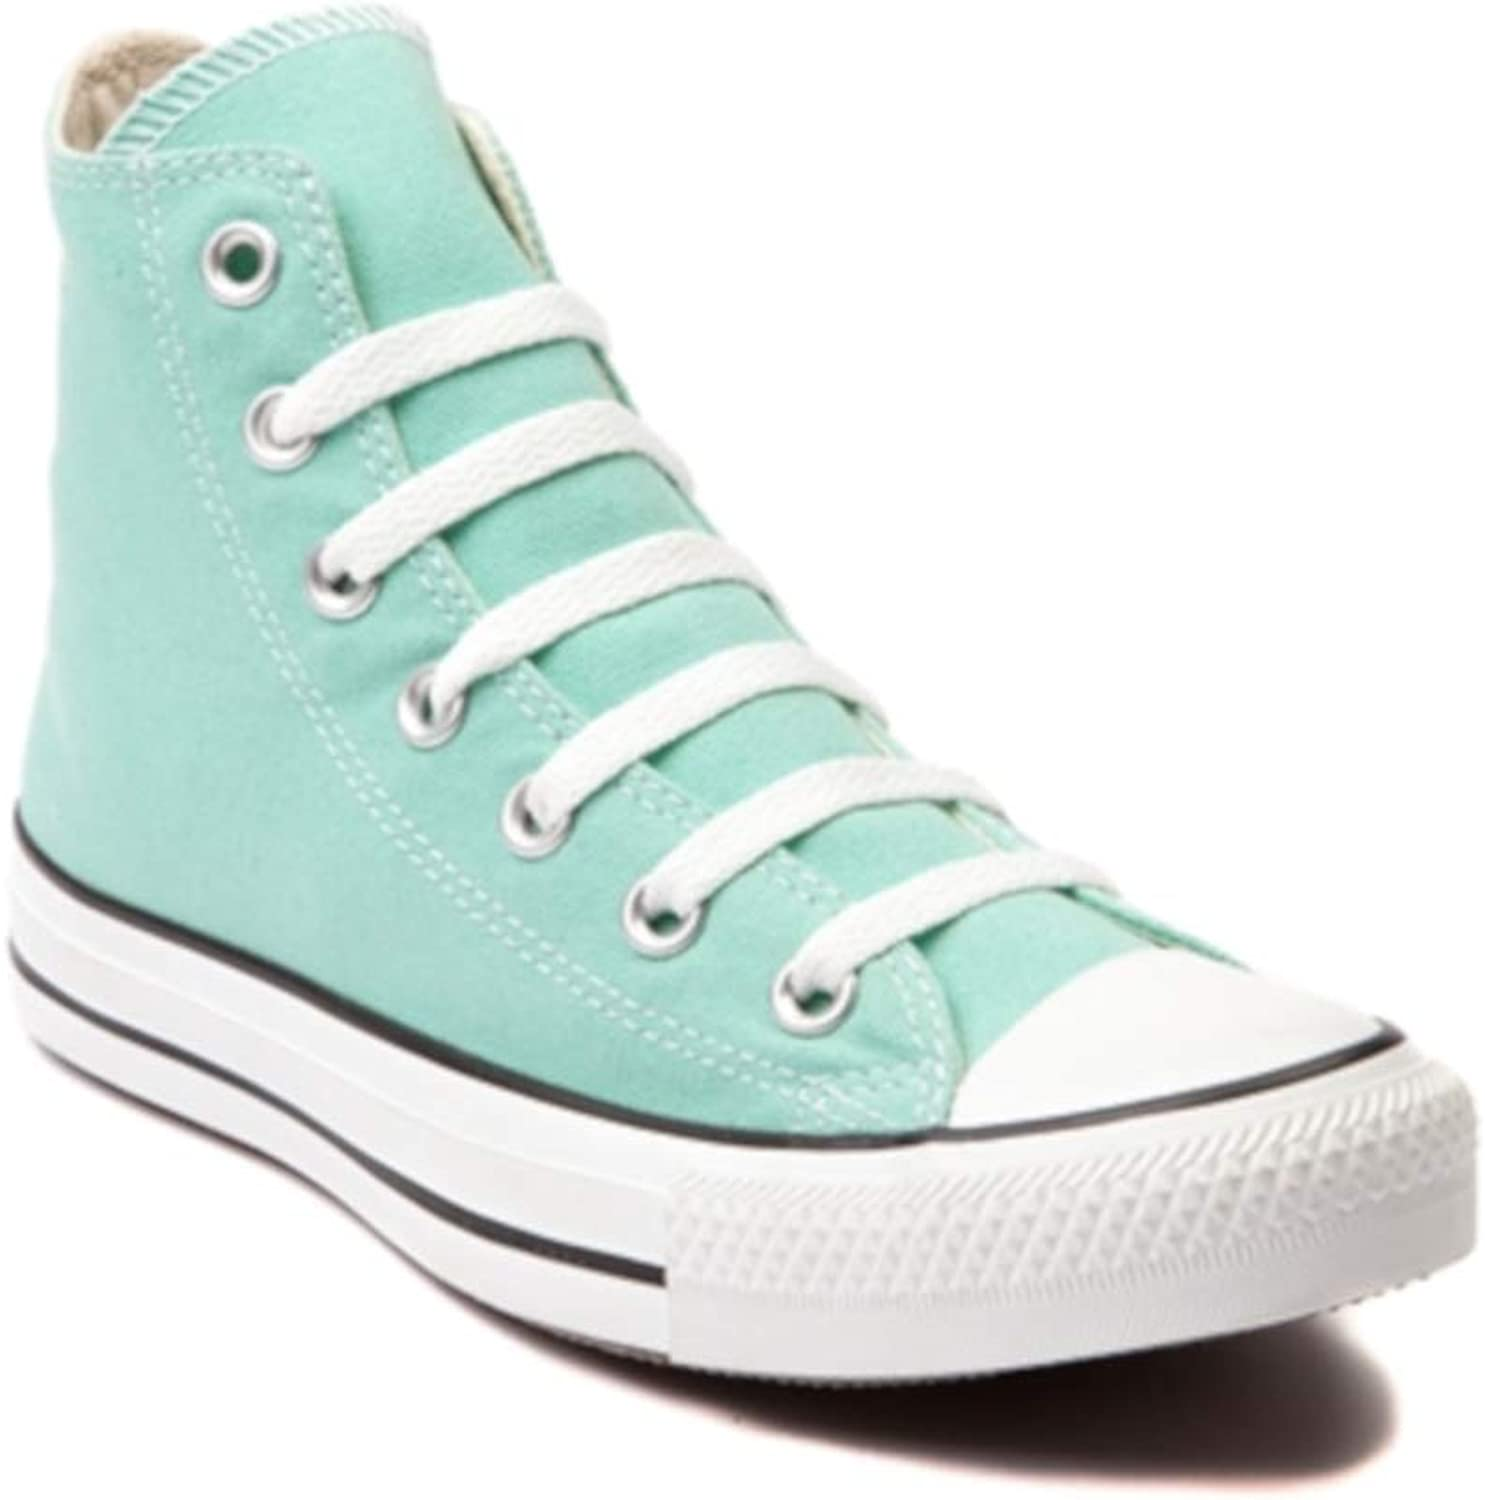 Converse - Chuck Taylor All Star Seasonals Hi Canvas shoes in Beach Glass, UK  12 UK, Beach Glass